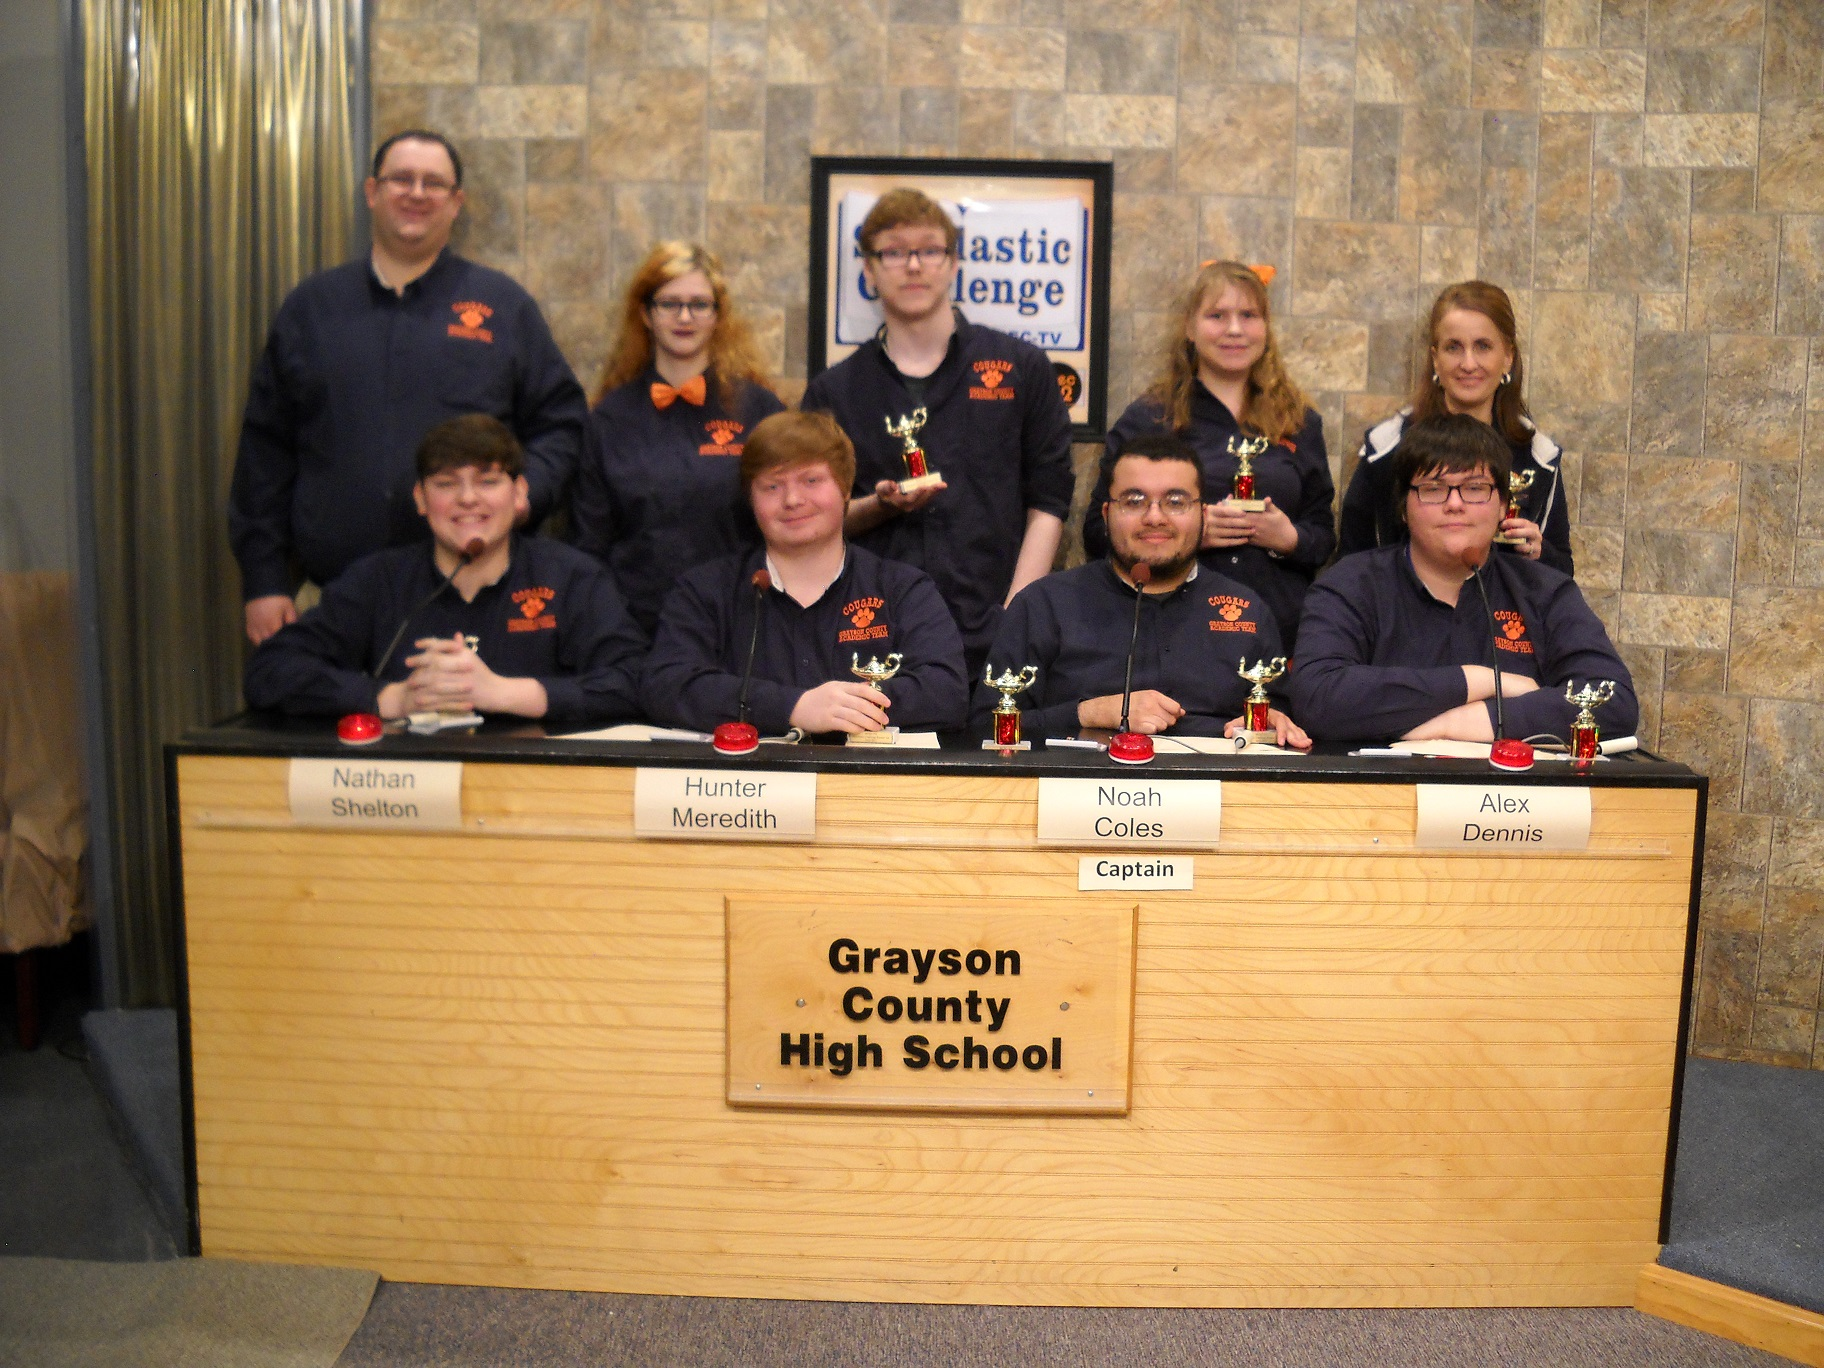 Grayson County High School -- Scholastic Challenge Runner-Up 2016-17